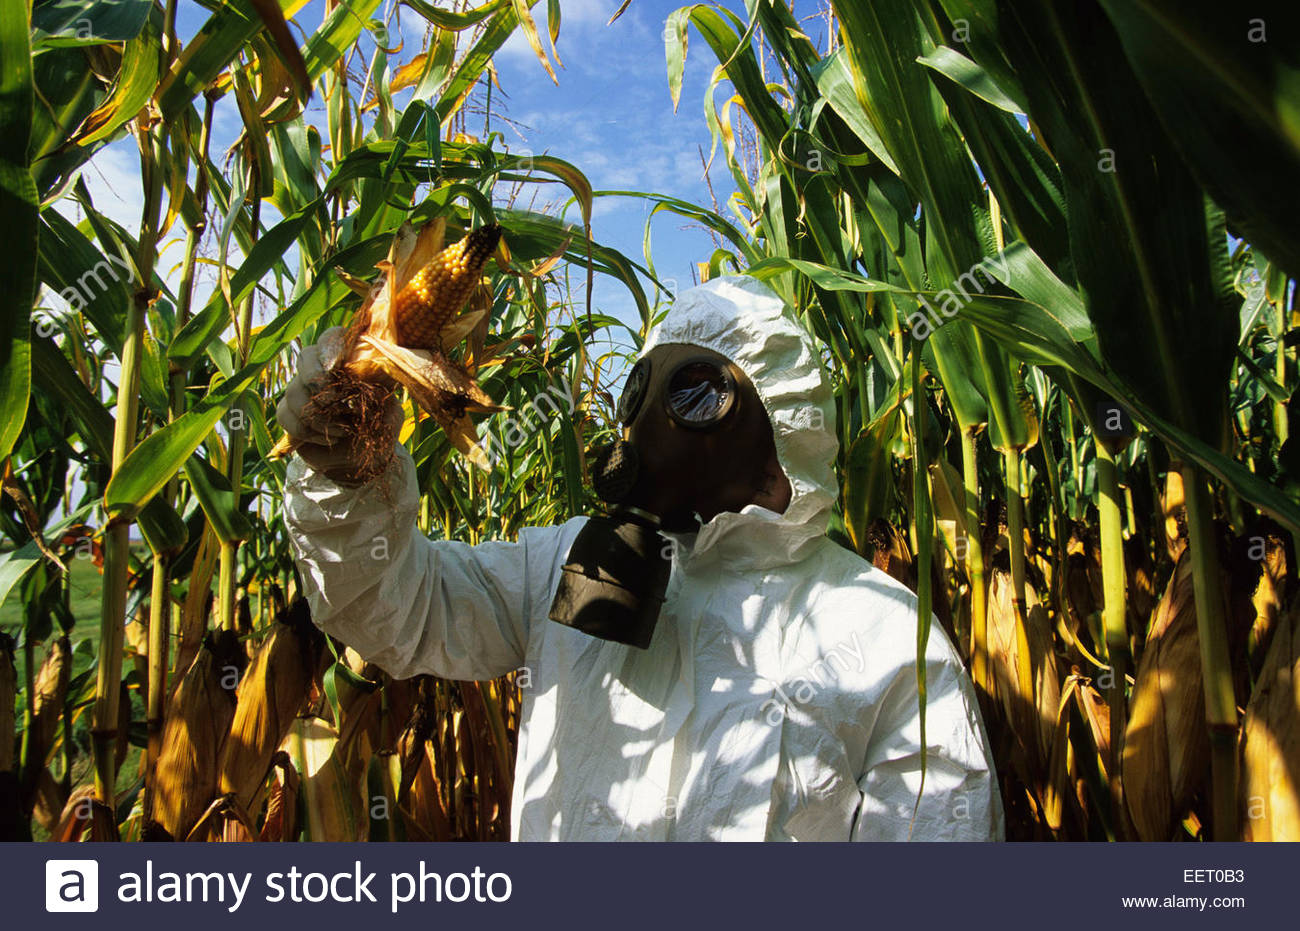 Trans genical agriculture. - Stock Image